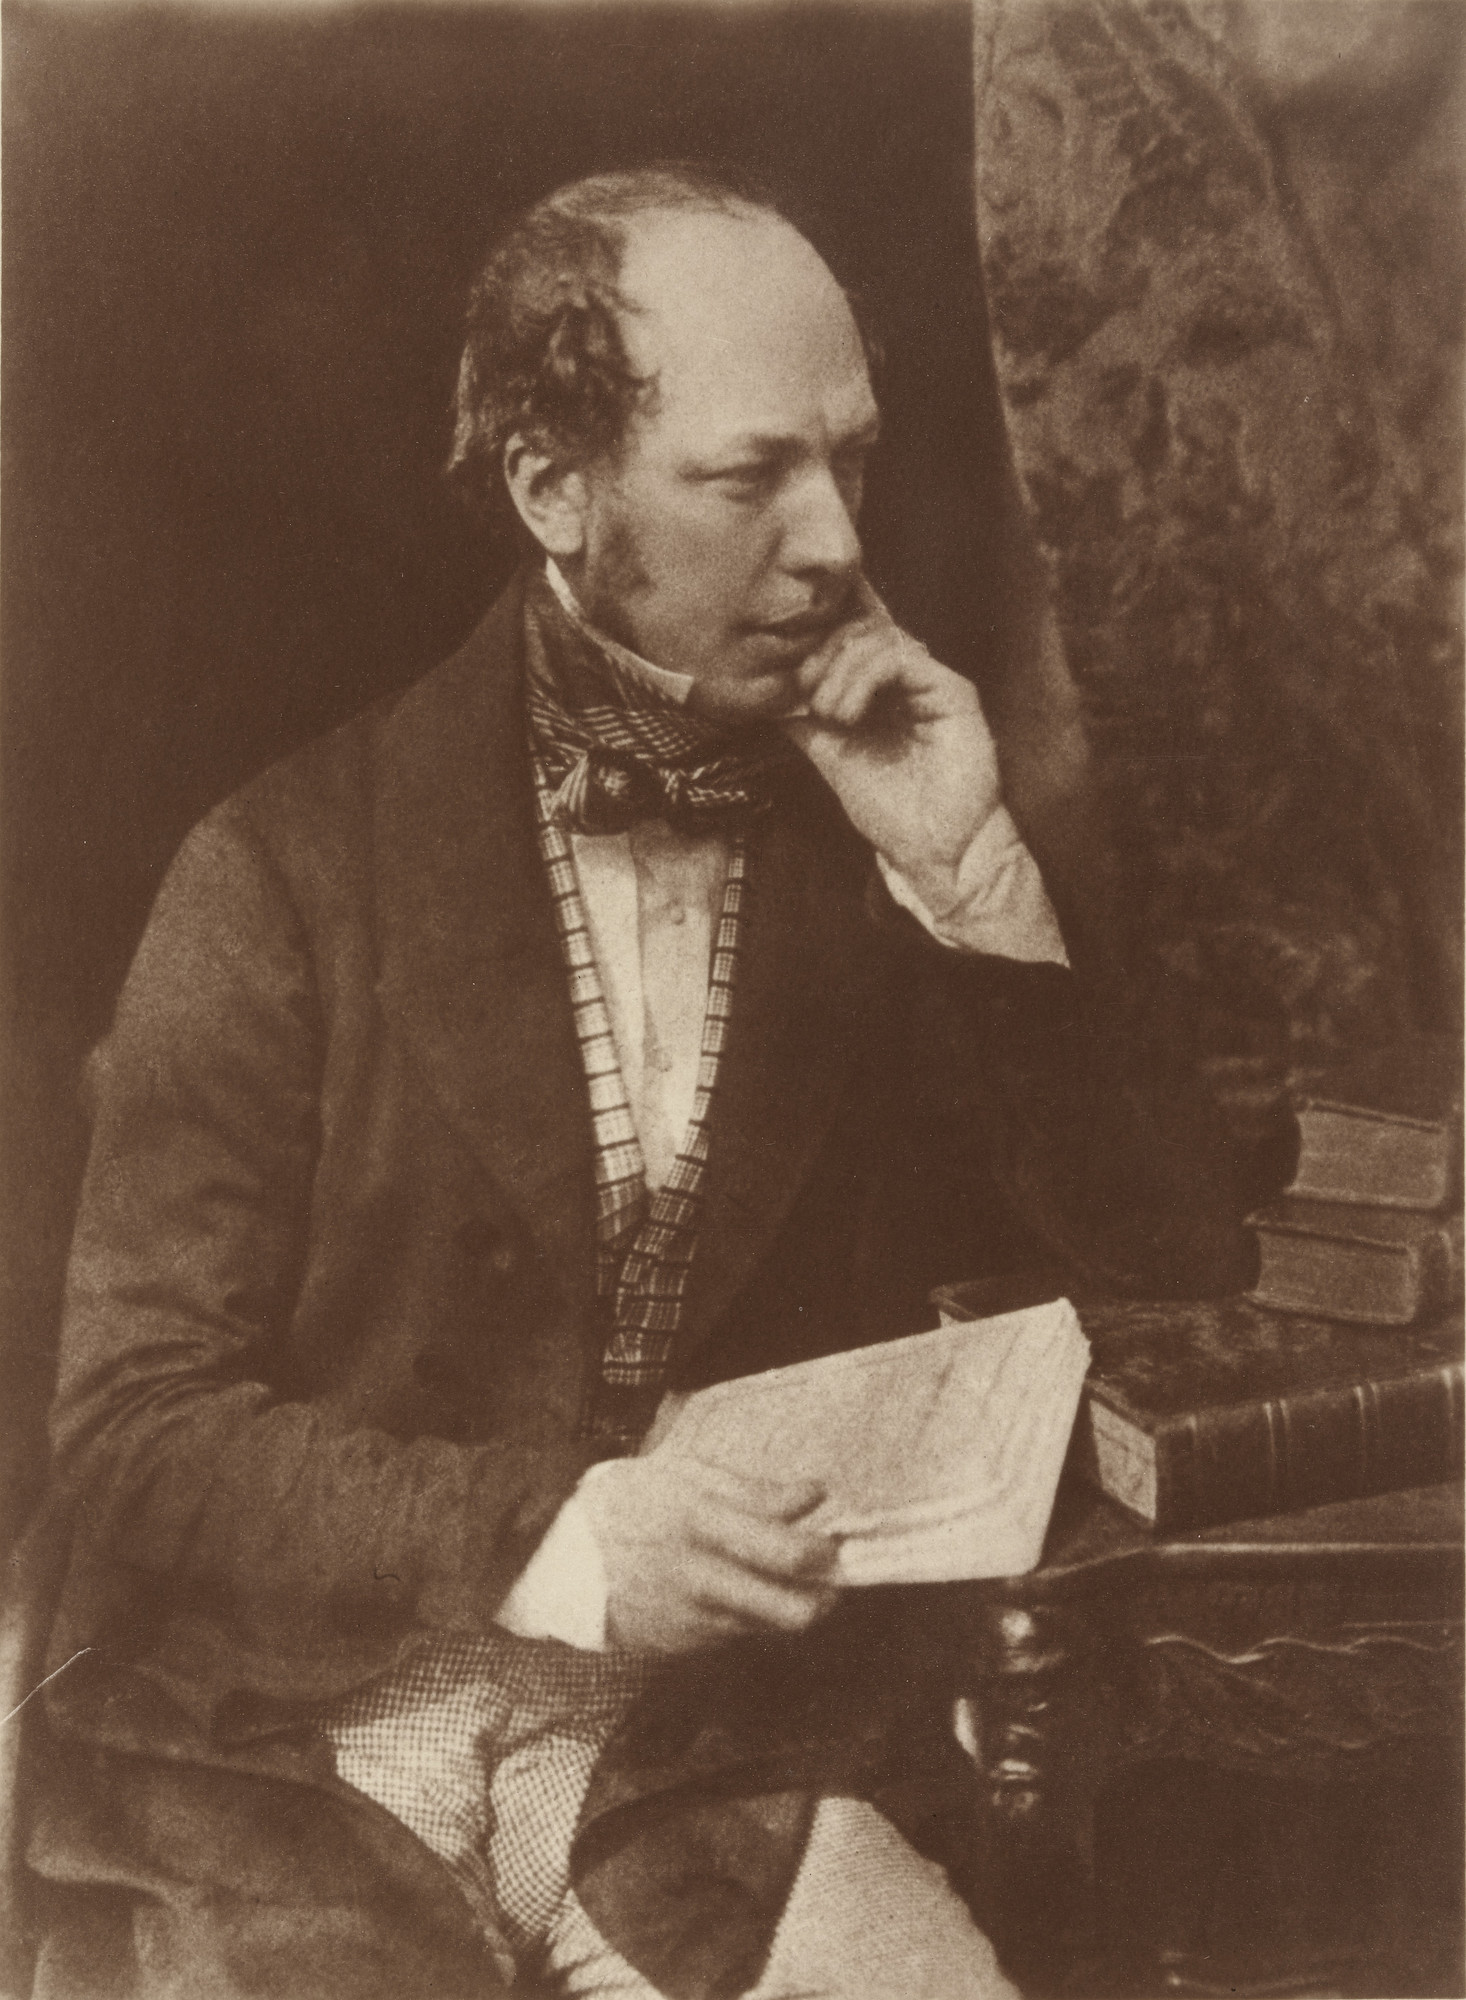 David Octavius Hill, Robert Adamson. John Murray. 1840